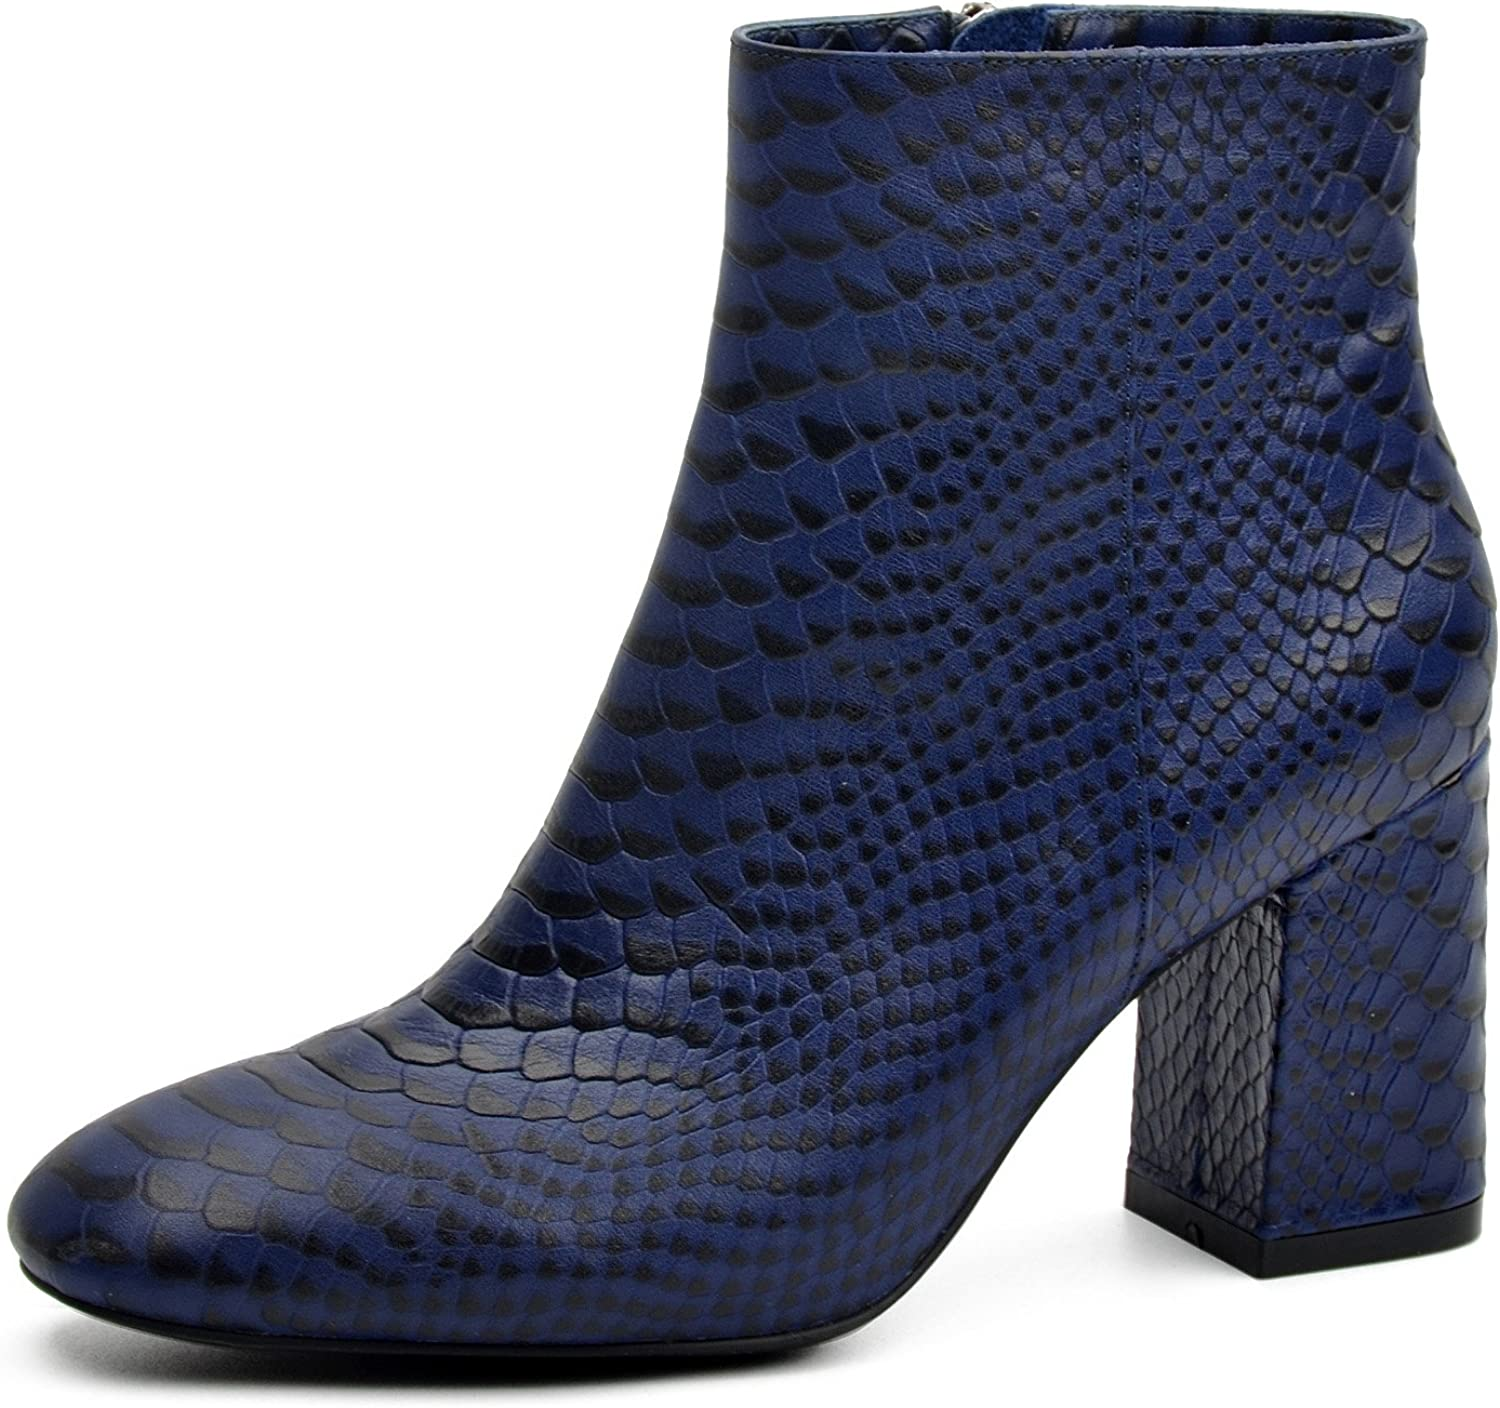 womenIN Snake Pattern Genuine Leather Boots for Women Fashion High Heels Spring Ankle Booties